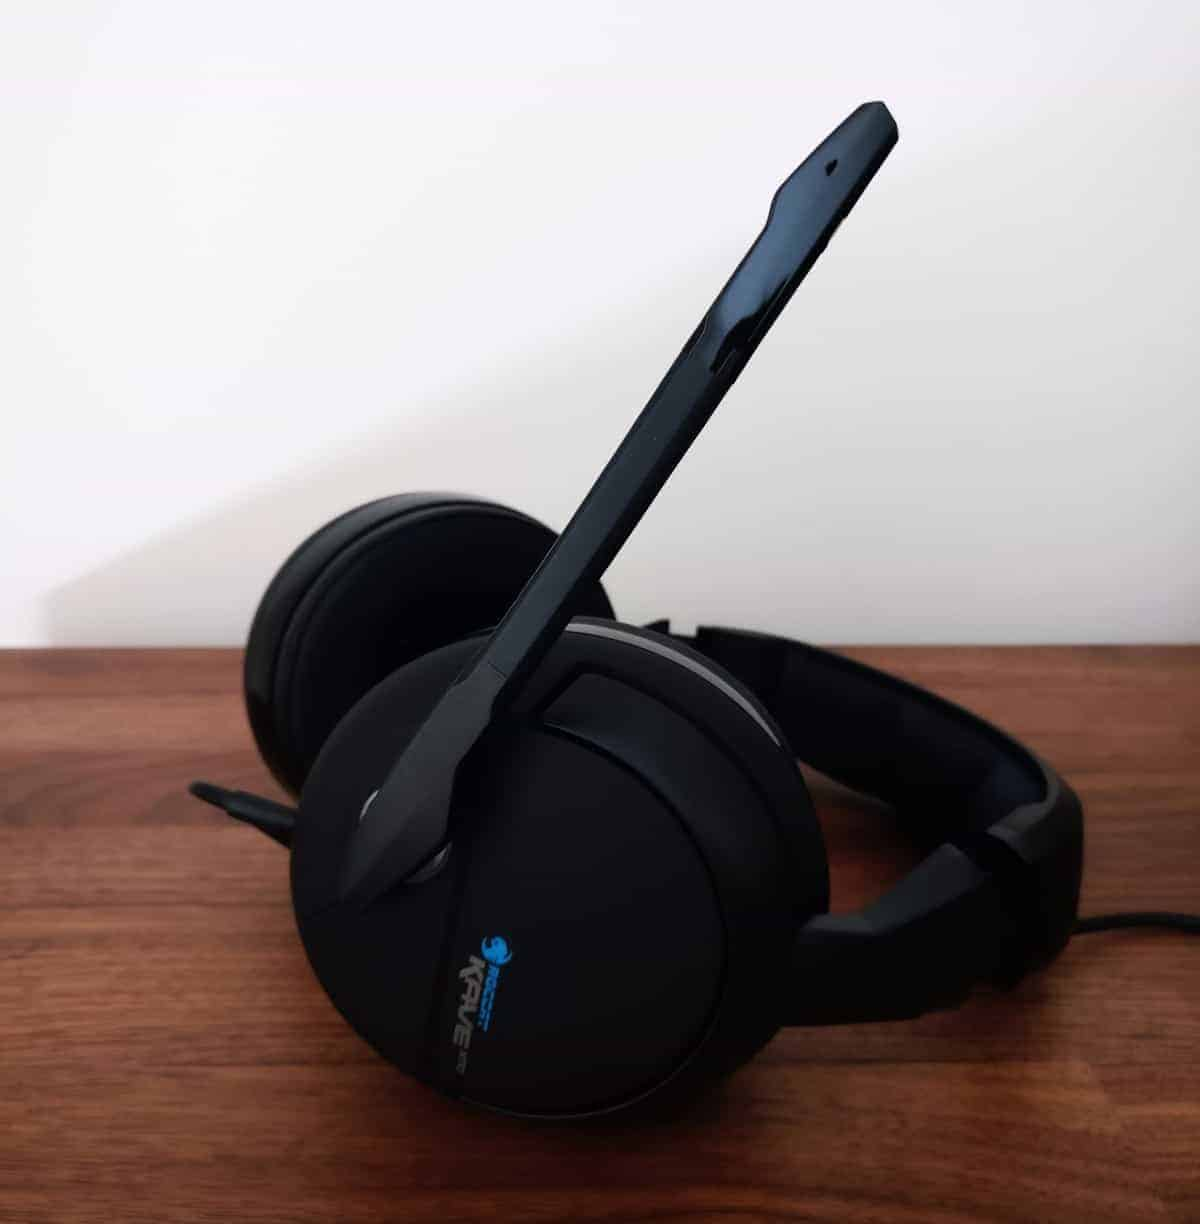 roccat-kave-photos17 Roccat Kave XTD 5.1 Digital Gaming Headset Review